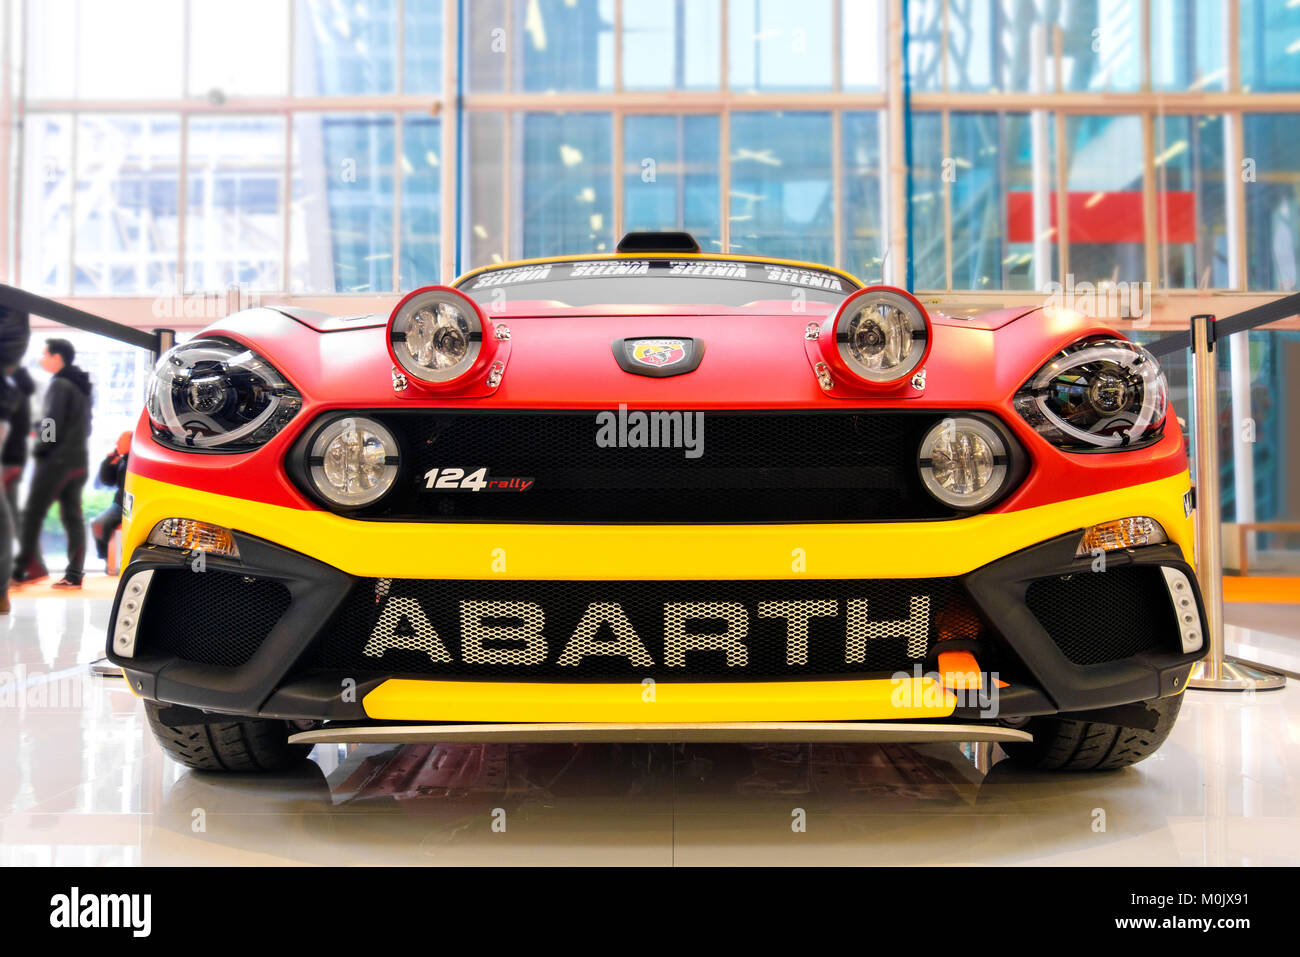 Front View Fiat Abarth 124 Rally Tuned Sport Cars Stock Photo Alamy